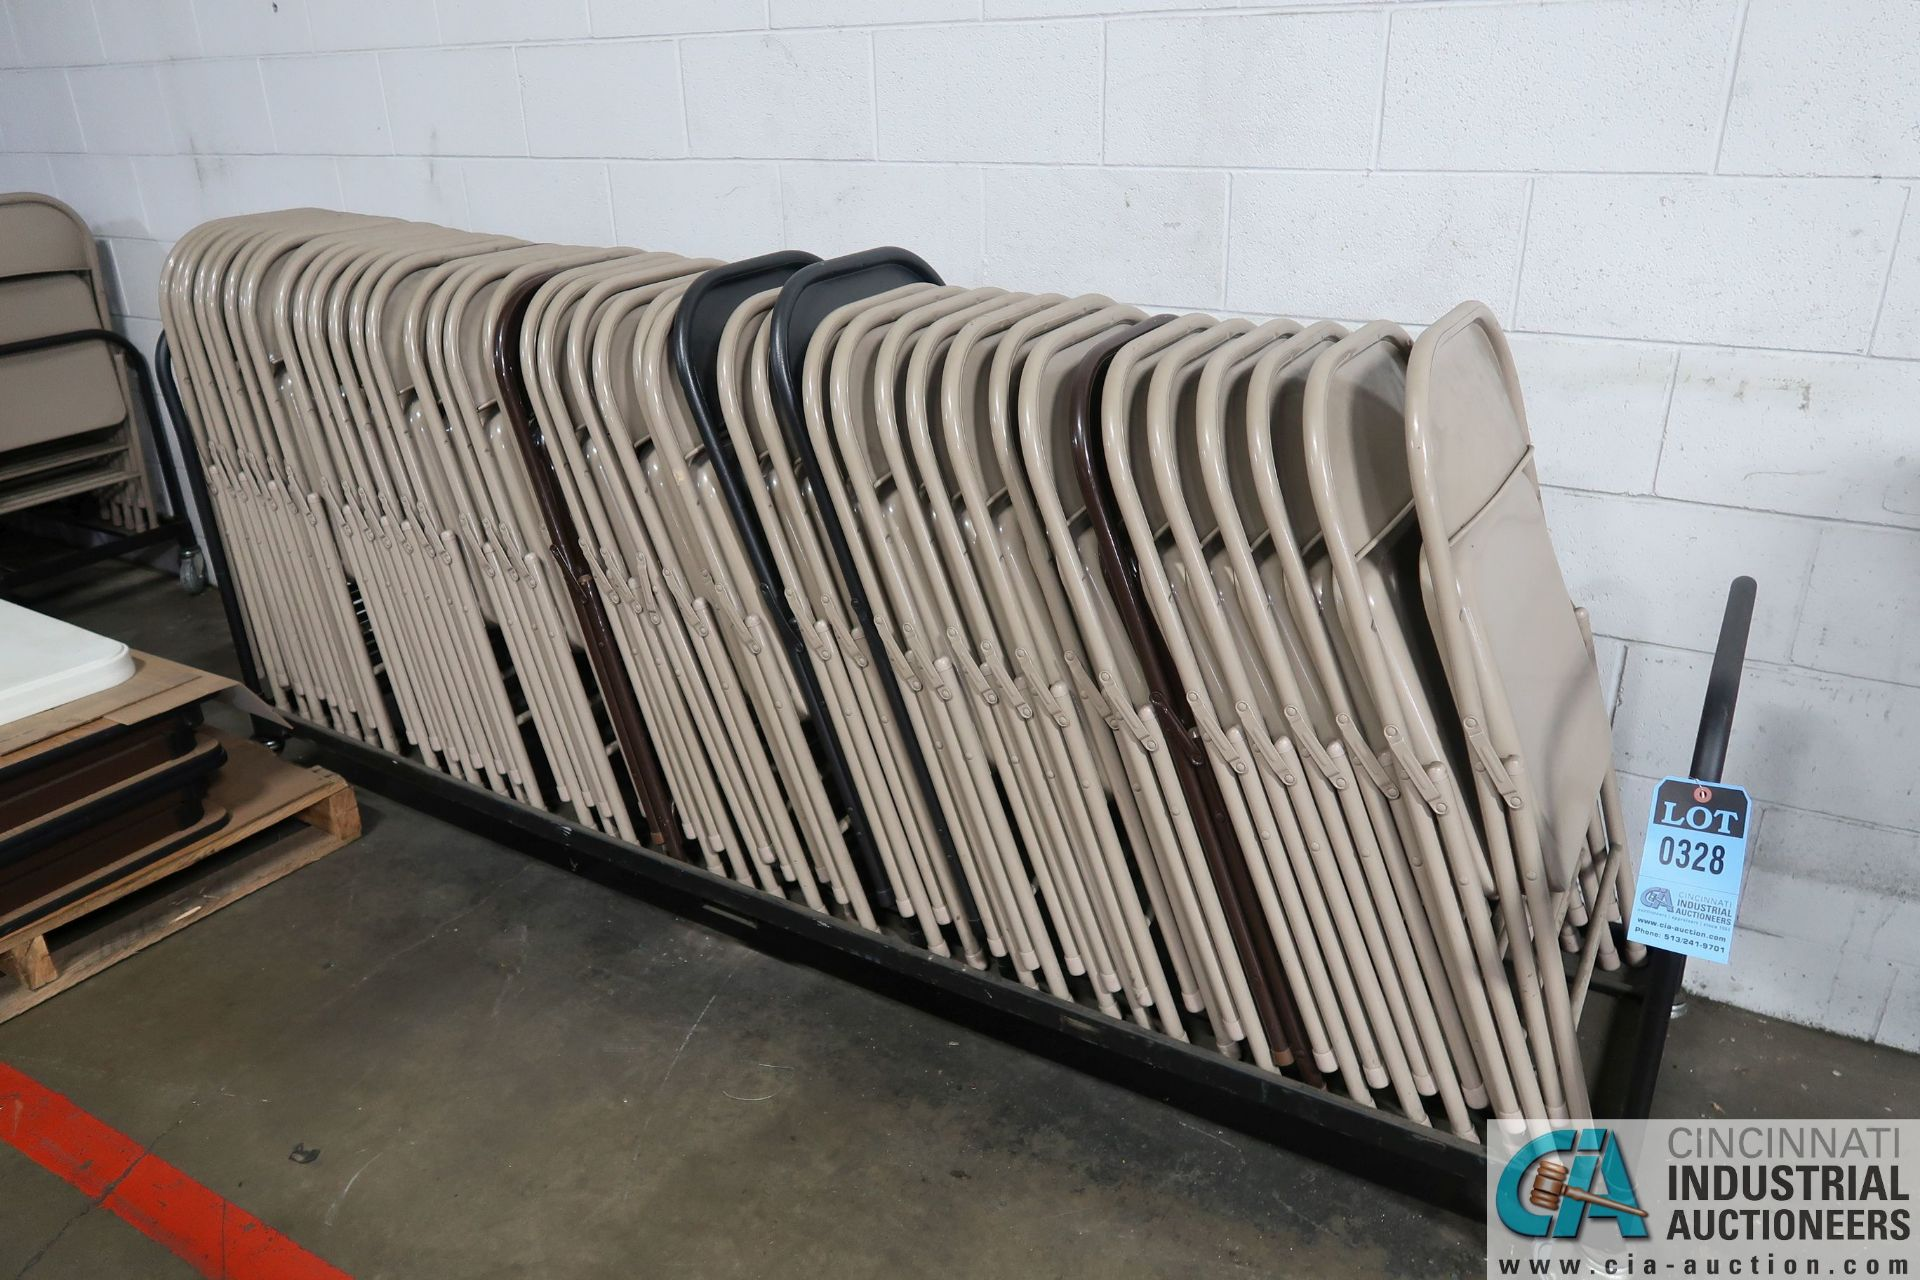 METAL FOLDING CHAIRS WITH STORAGE CART